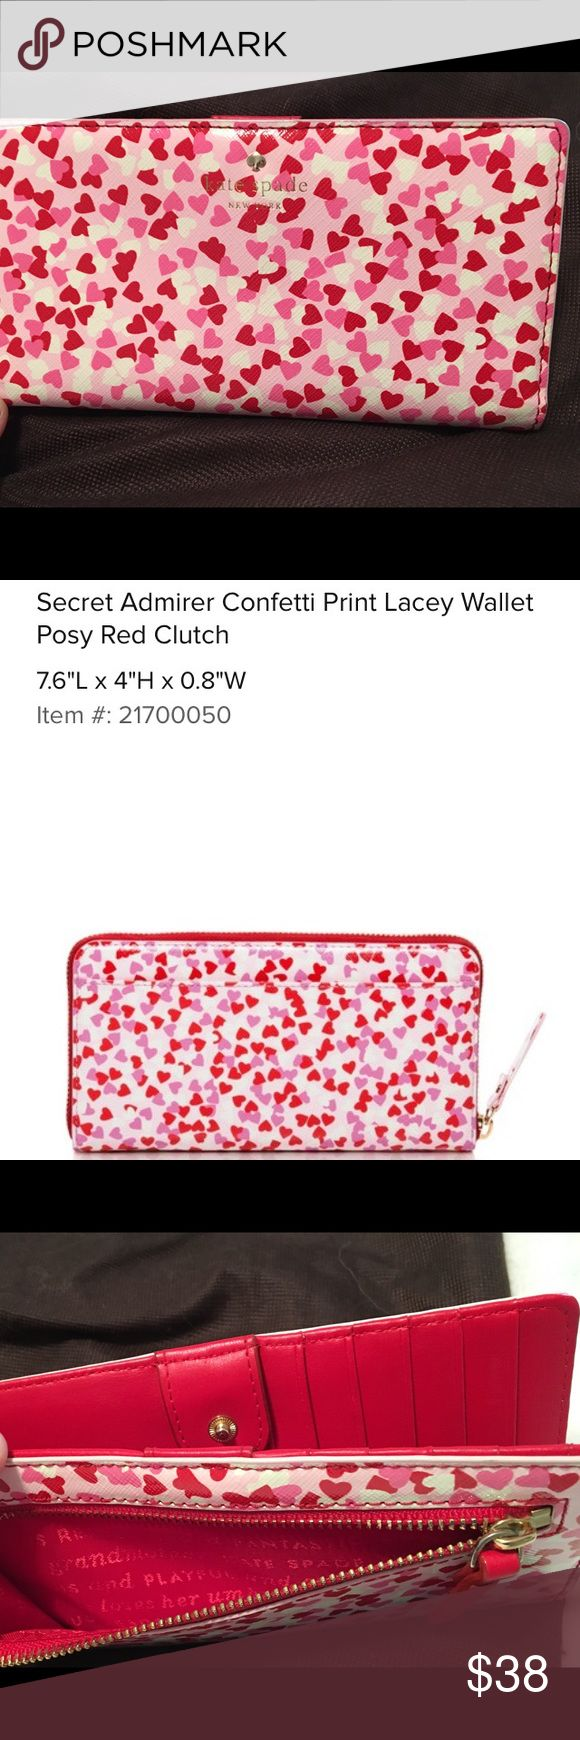 NWOT Kate Spade Secret Admirer Wallet Perfectly sweet for your sweetheart. Show her how much you love her with this beautiful wallet. Comes with dustbag. White red and pink. kate spade Bags Wallets